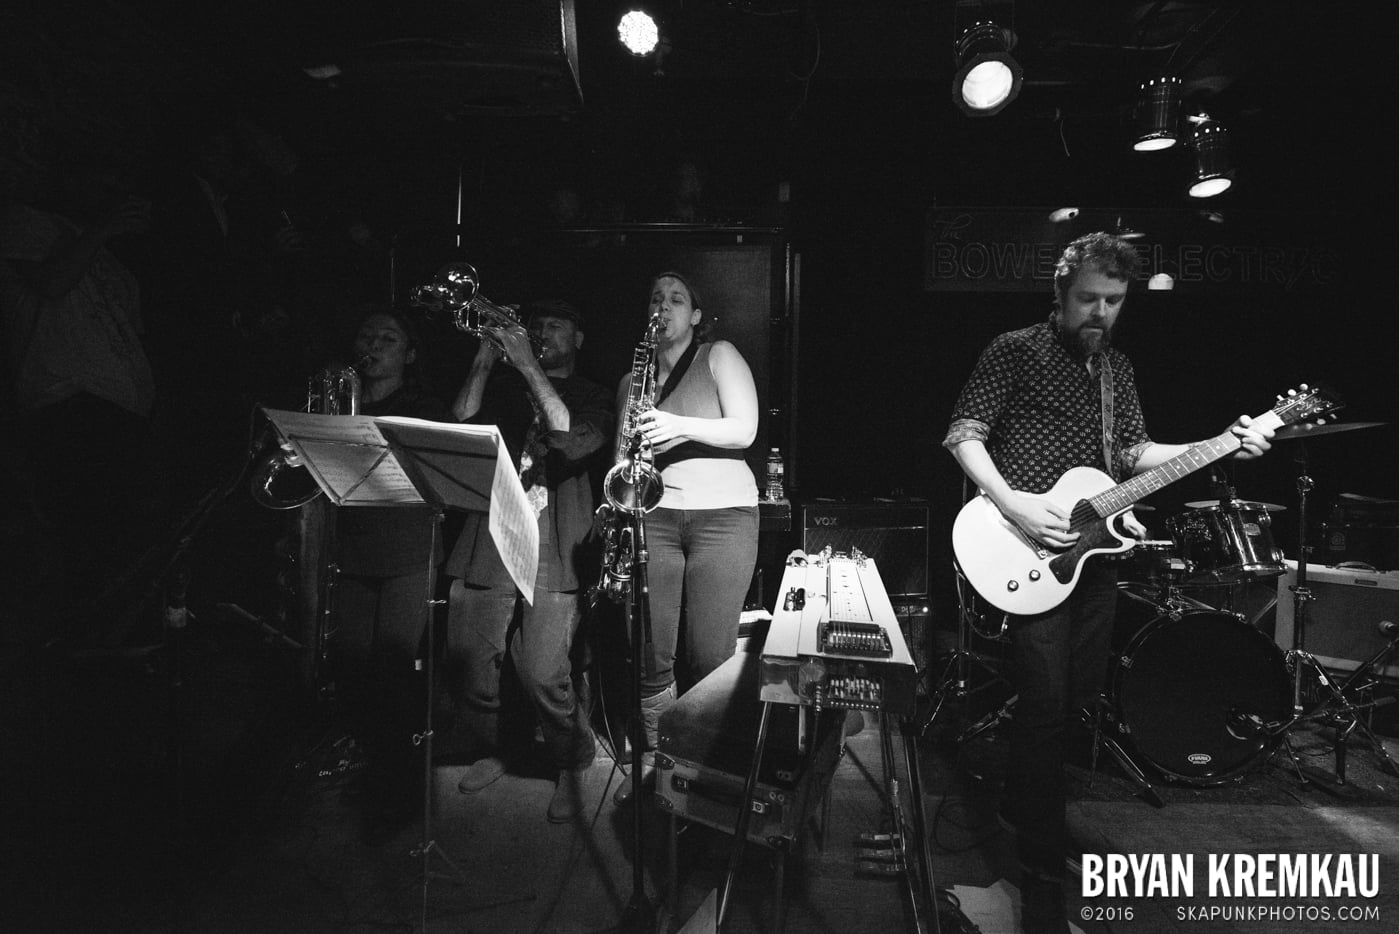 Trapper Schoepp & The Shades @ Bowery Electric, NYC - 11.20.14 (18)